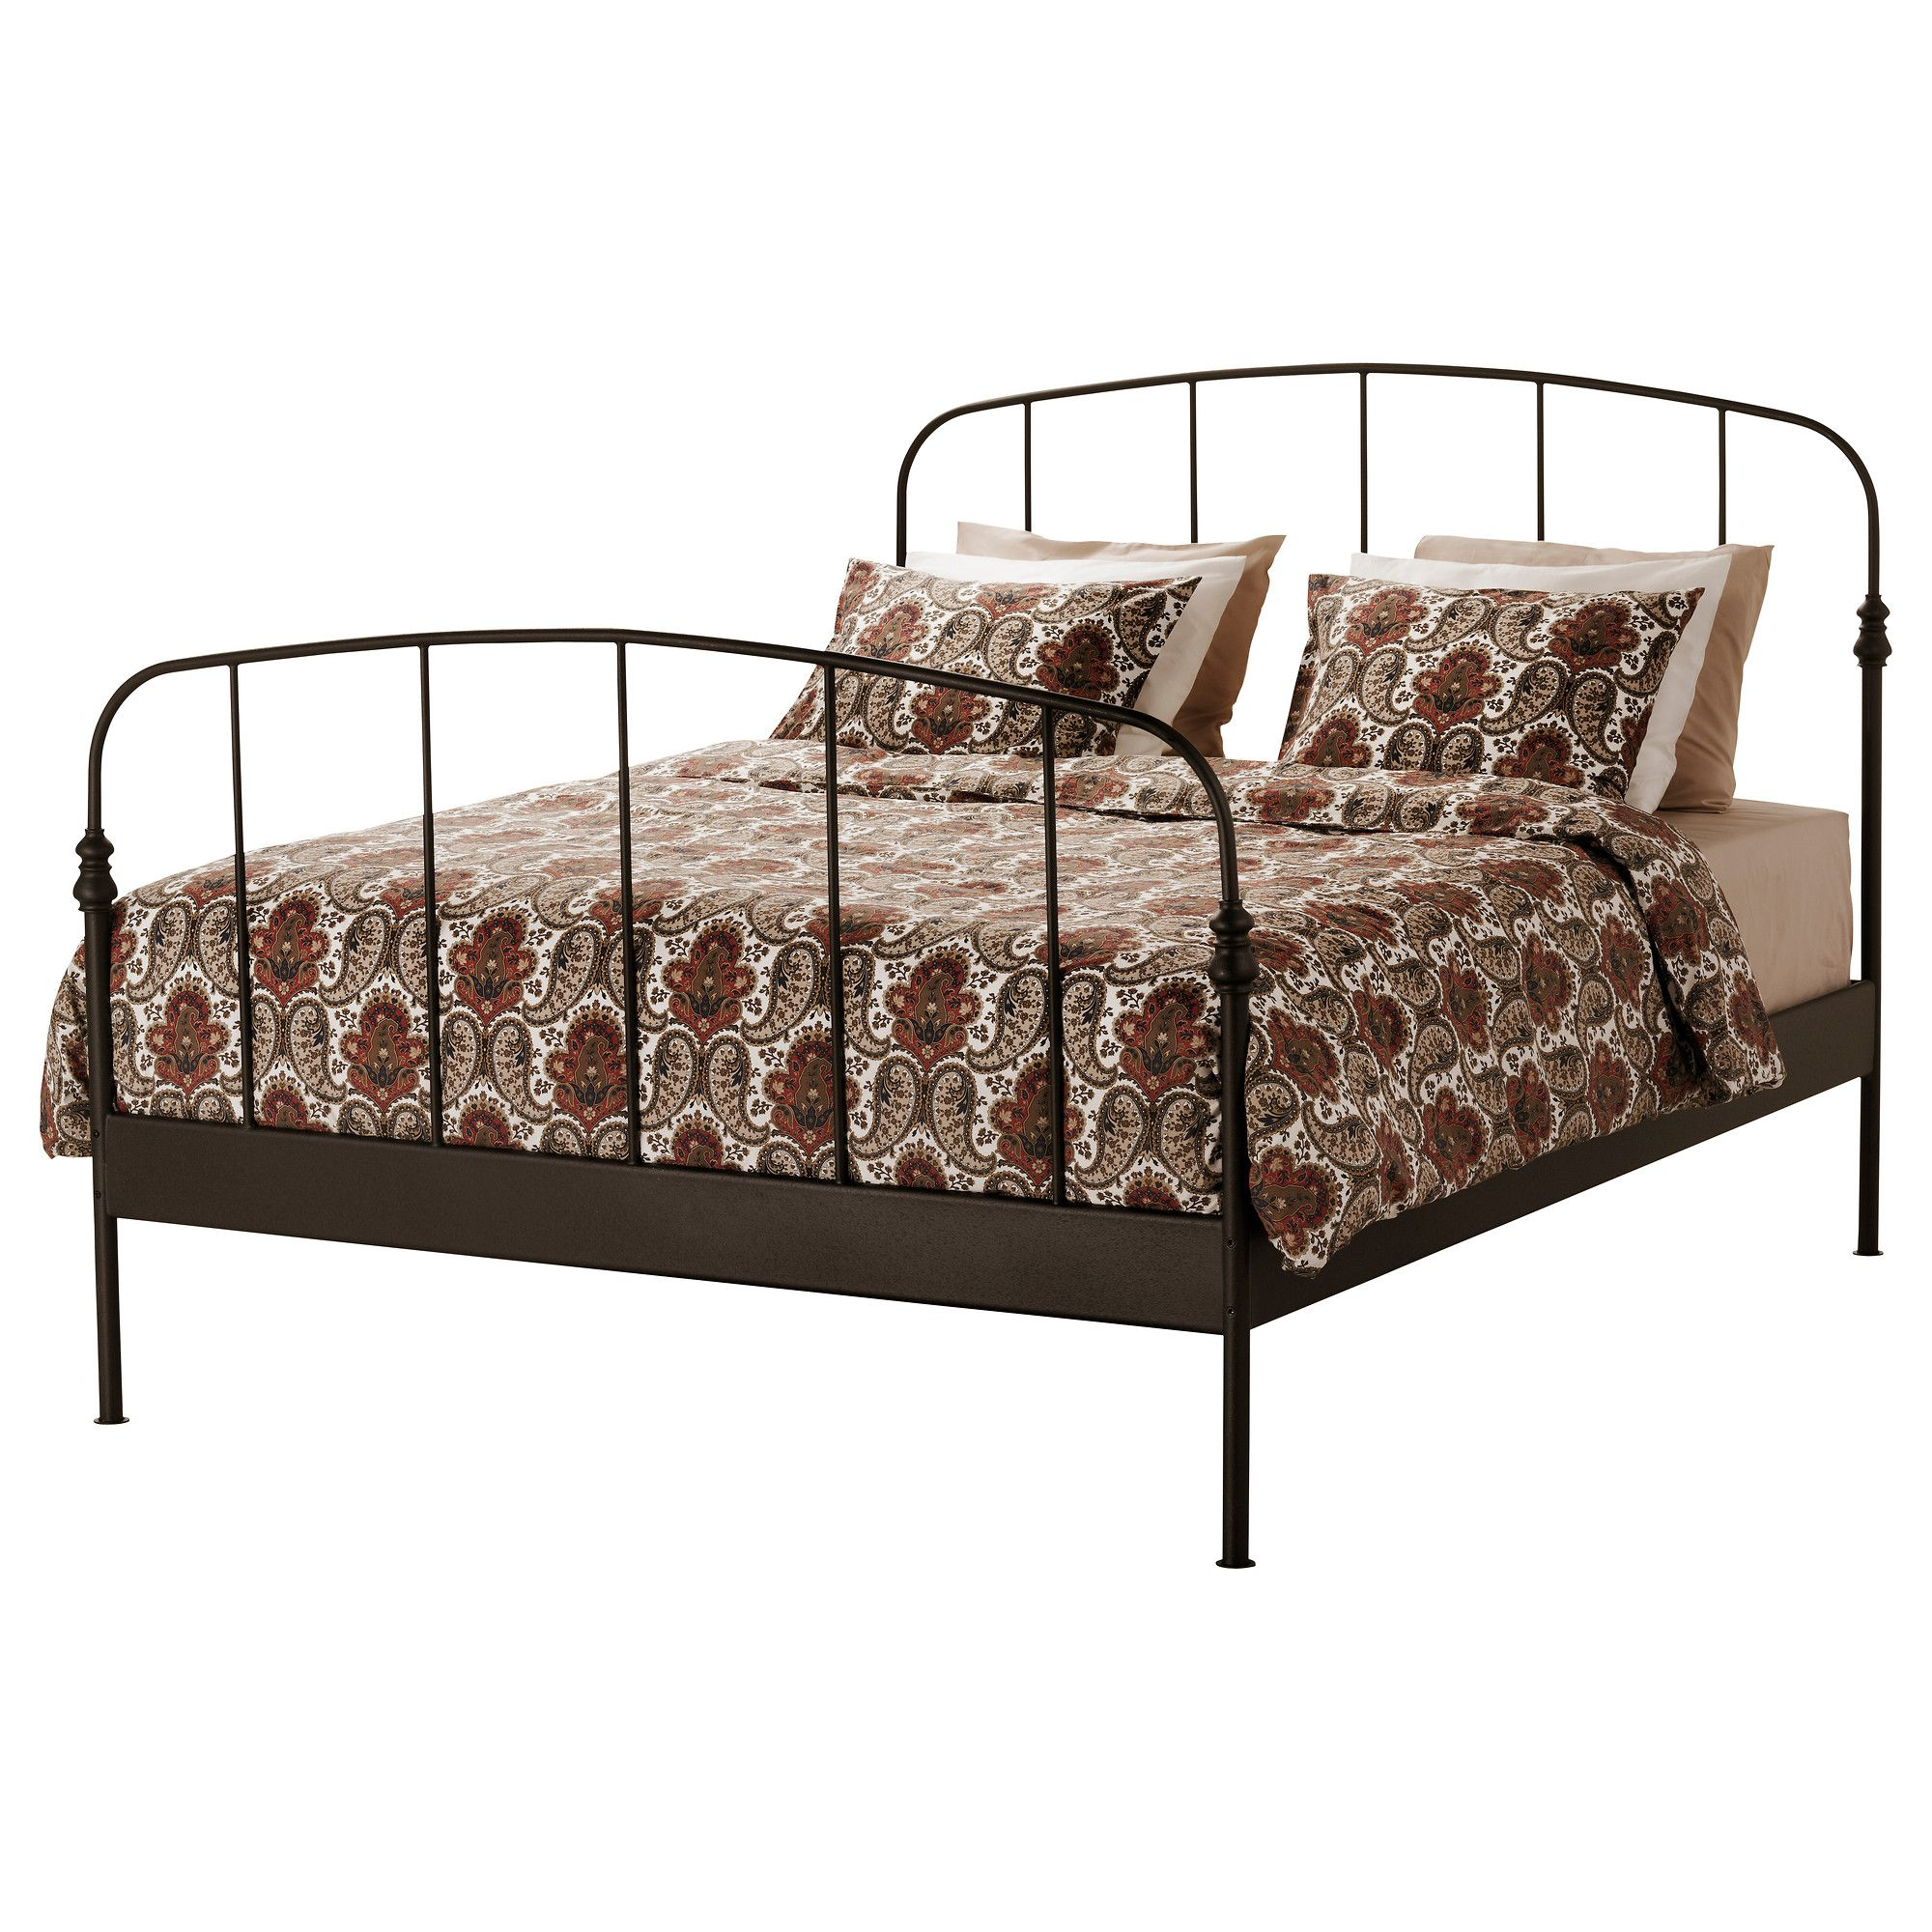 126 lillesand bed frame queen ikea